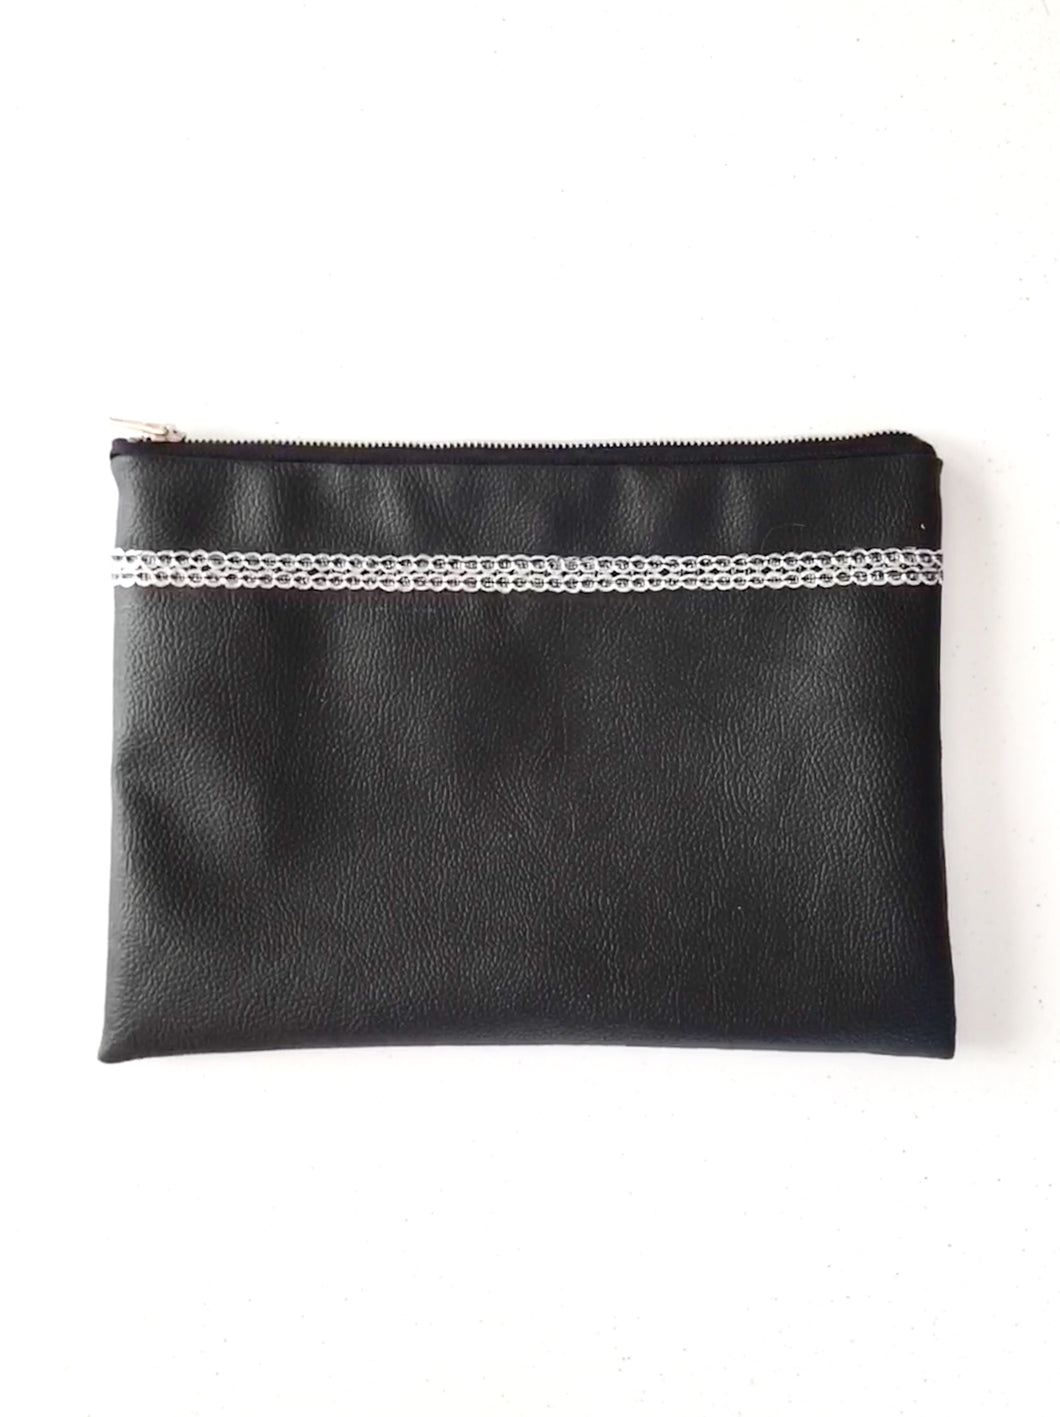 Vinyl Clutch with Silver Trim